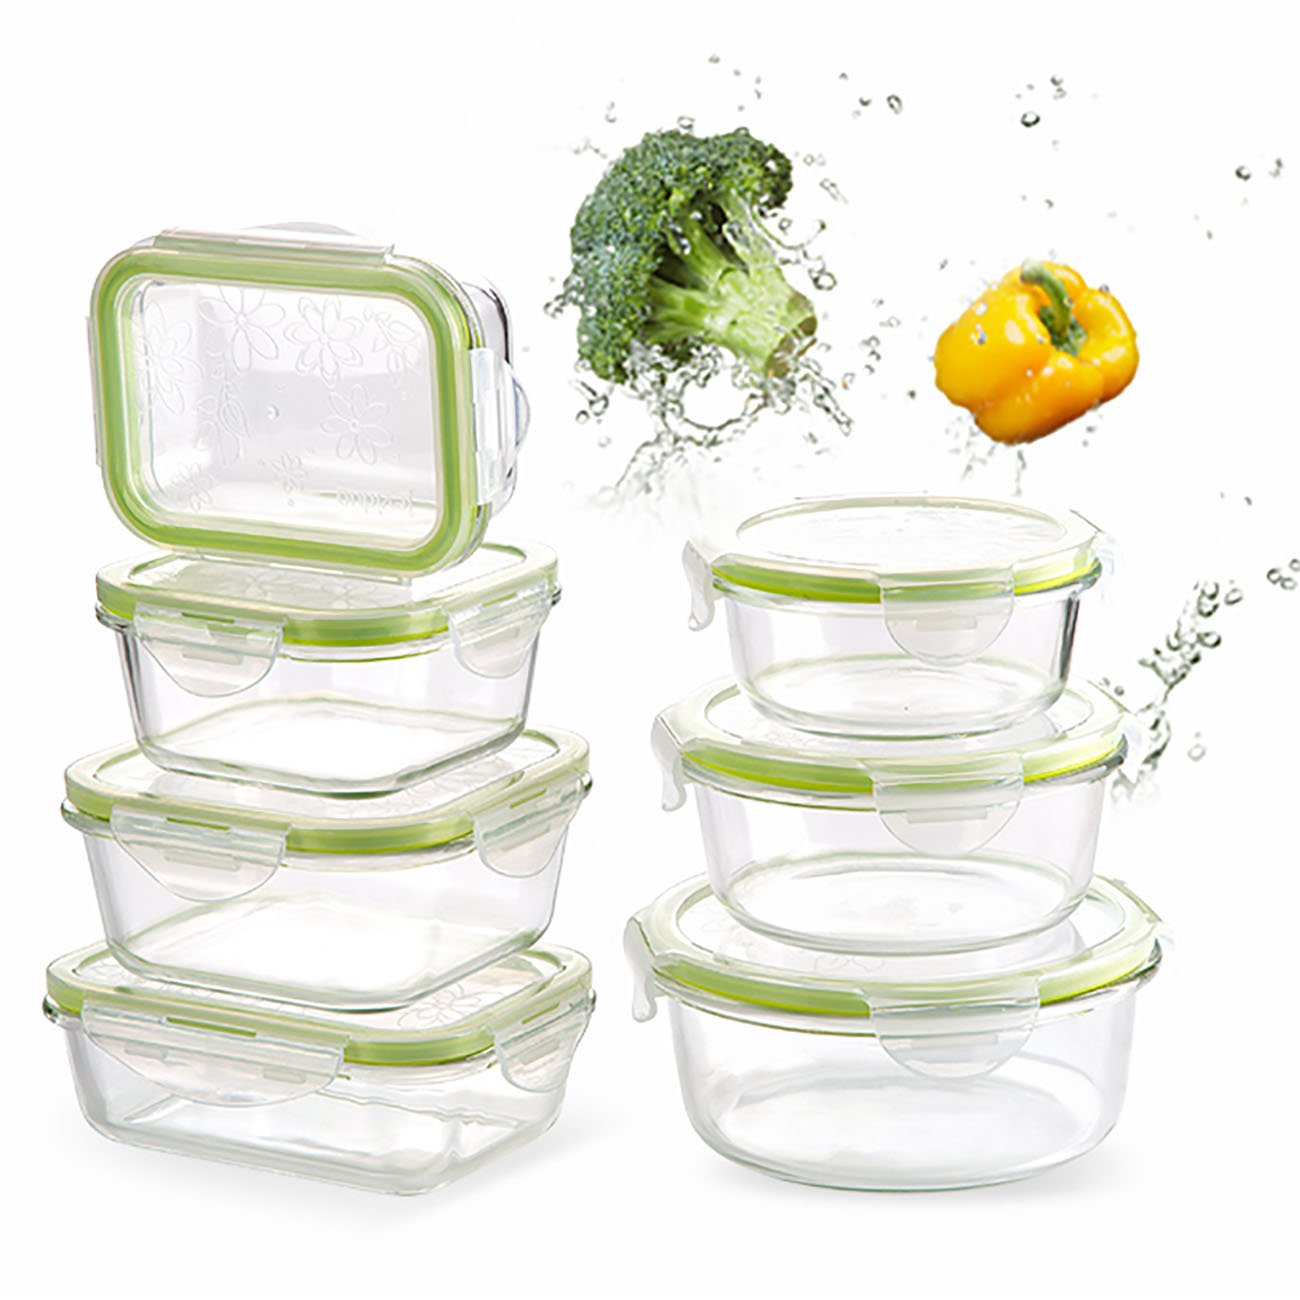 980/800ML Glass Lunch Box Microwave Oven Heating Refrigerated Sealed Leakproof Food Container Transparent Borosilicate Bento Box